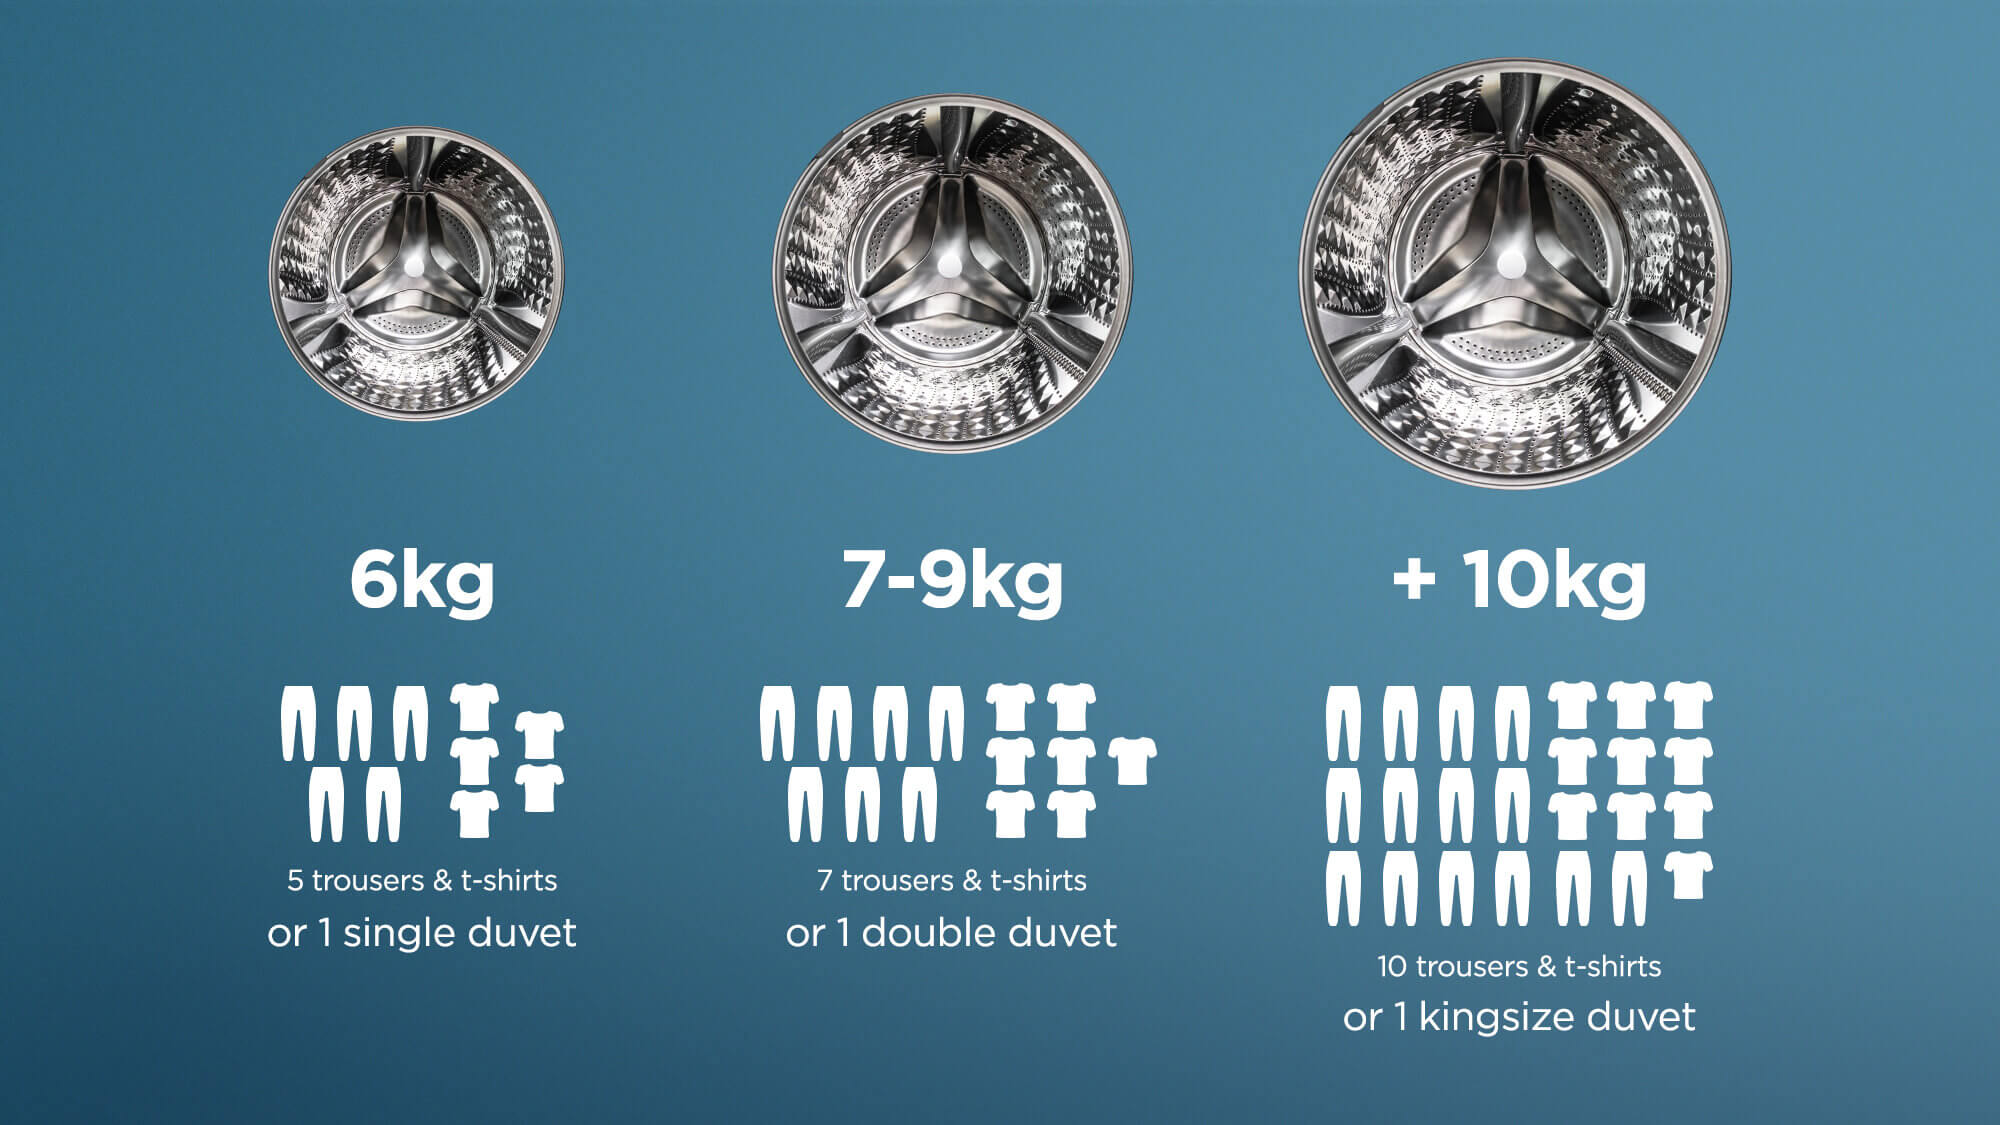 Drum Size Infographic